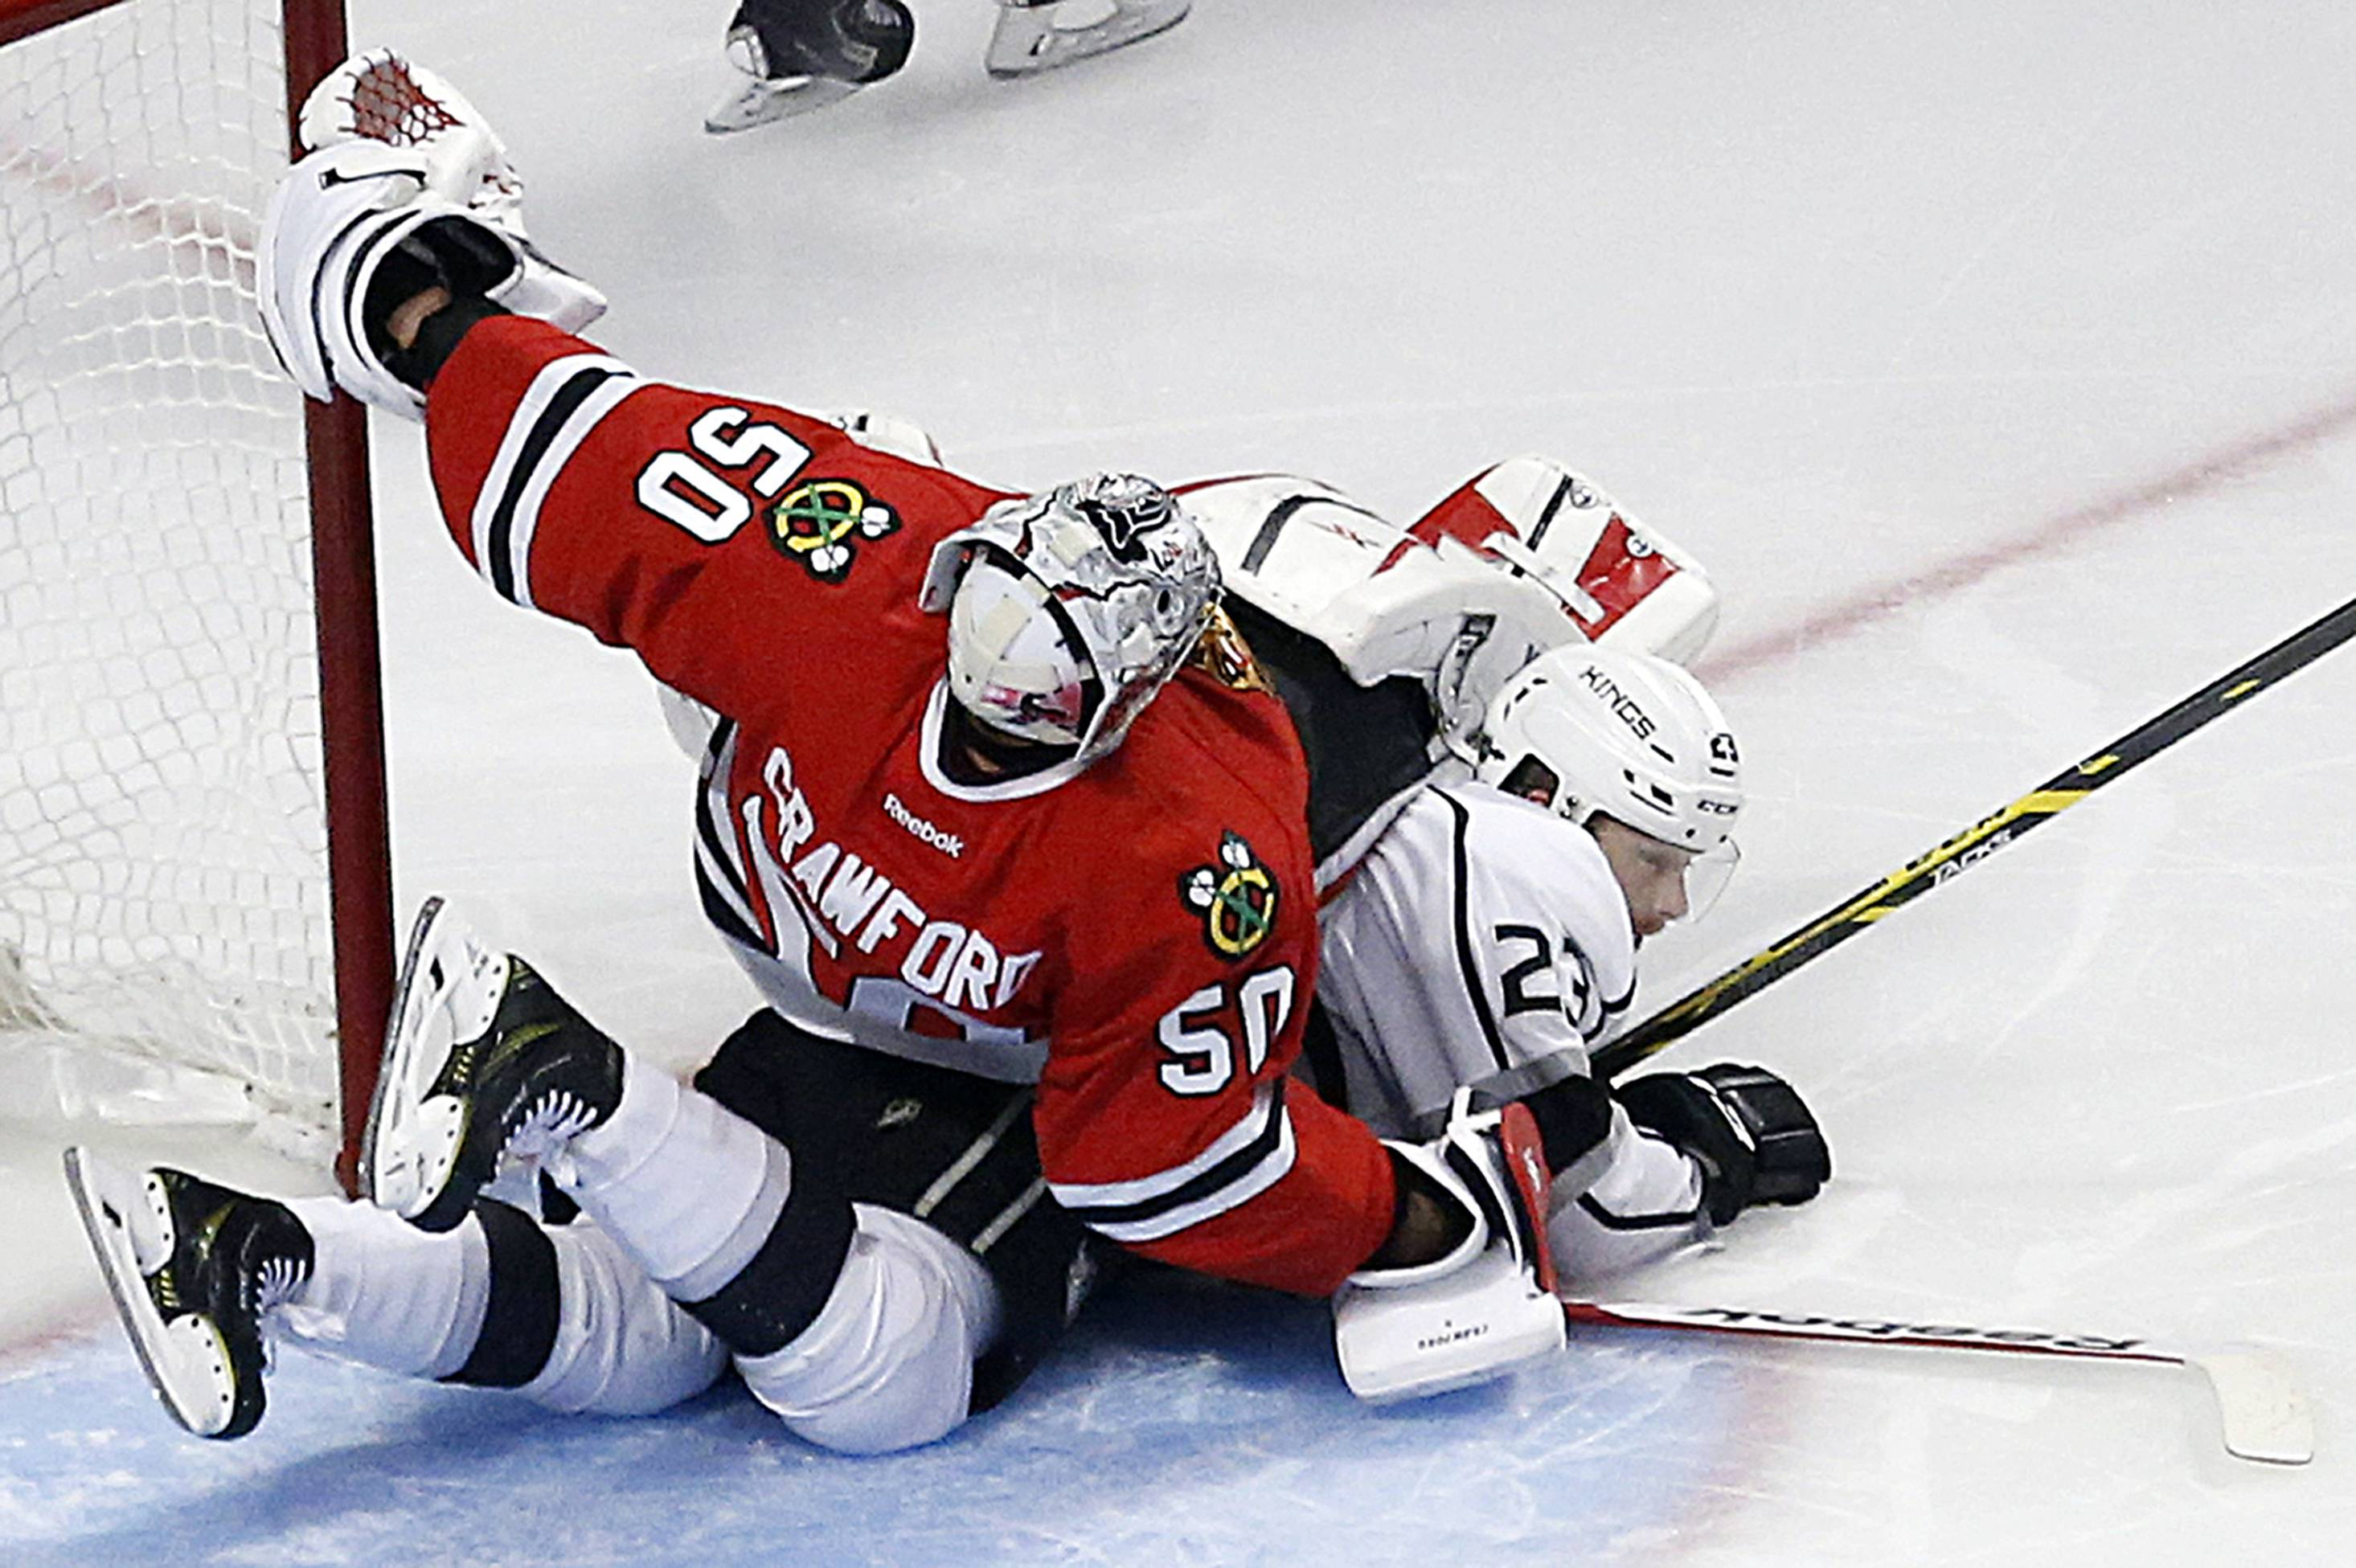 Corey Crawford collides with Dustin Brown during the second period in Game 7 of the Western Conference finals Sunday.